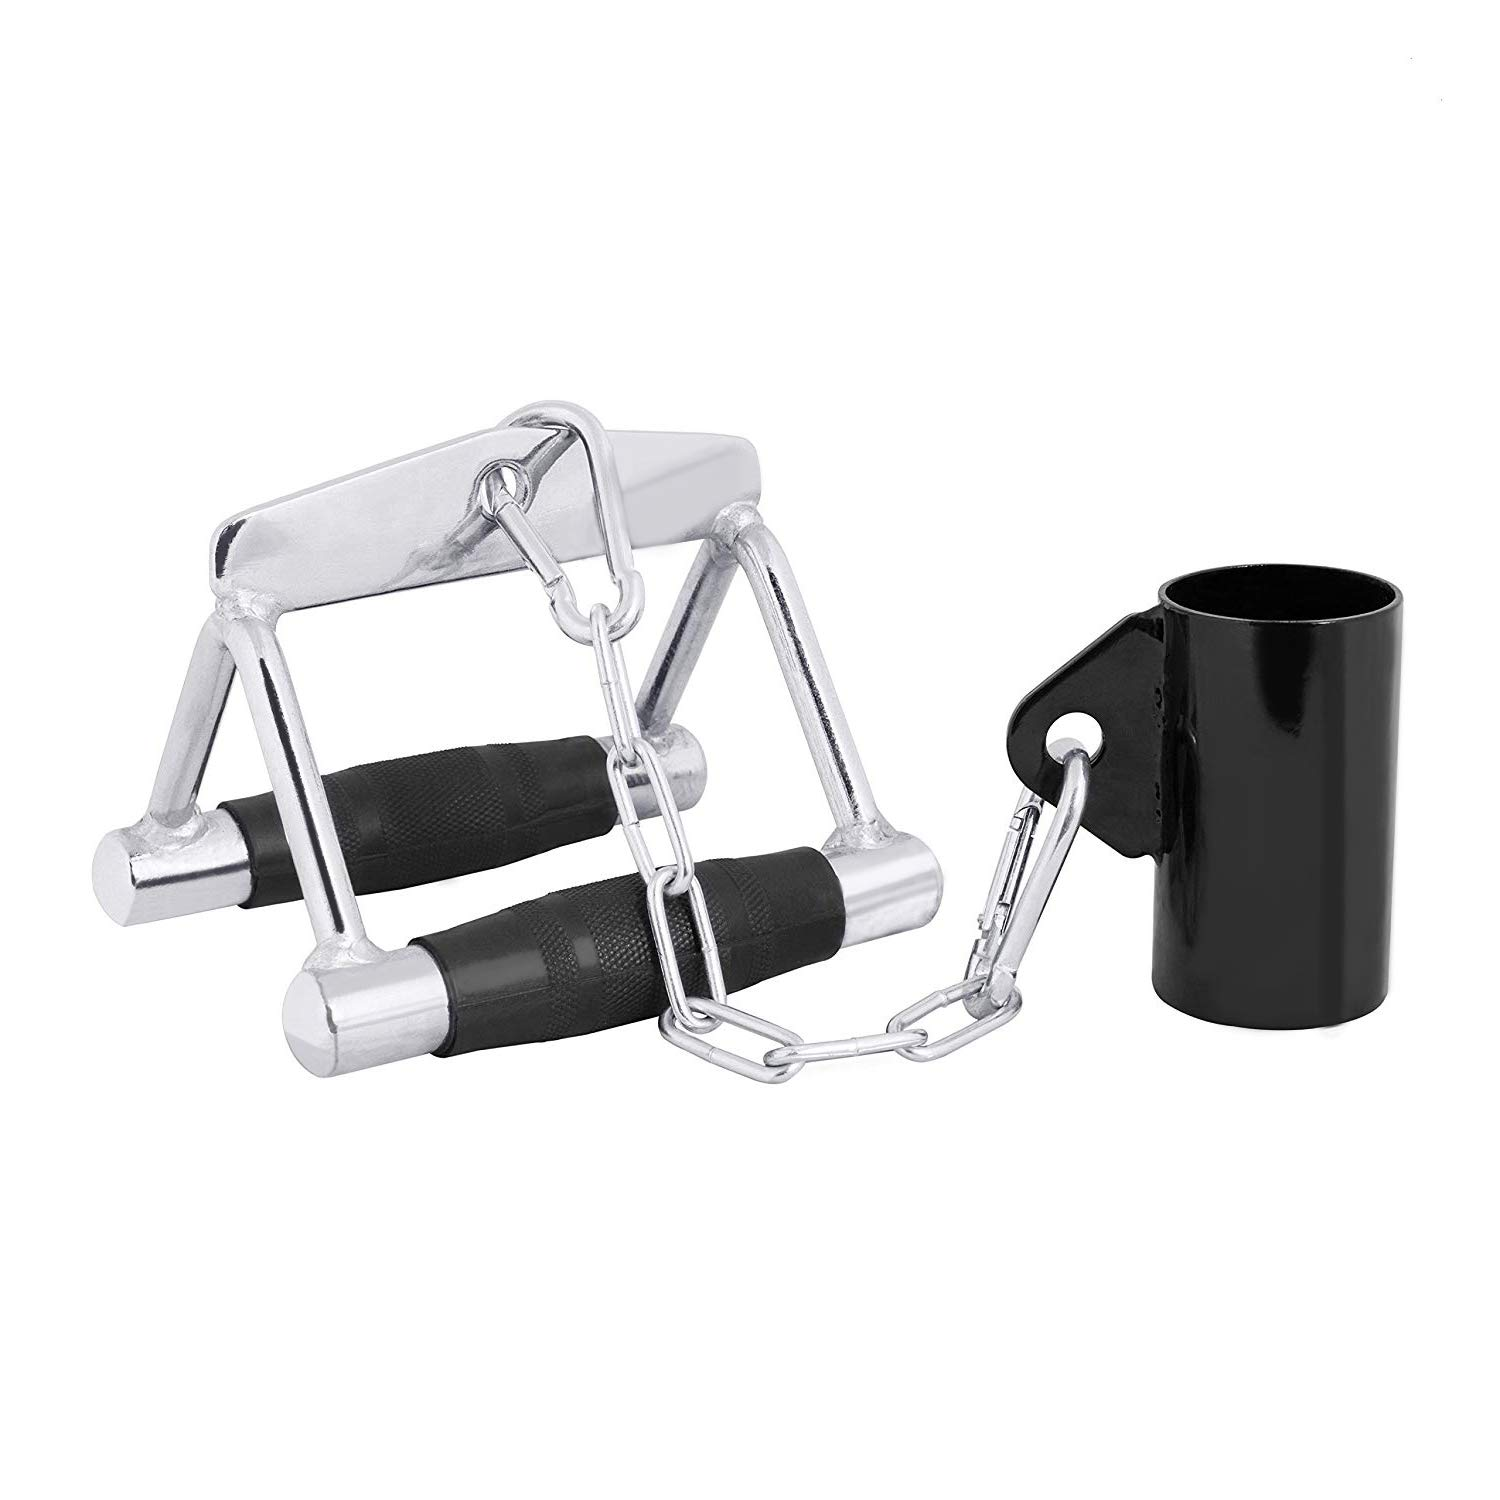 RIGERS Combo T-Bar Row Platform & Attachments | Multi-Choice: Single Eyelet Landmine Attachment with Chain and V Handle Accessory